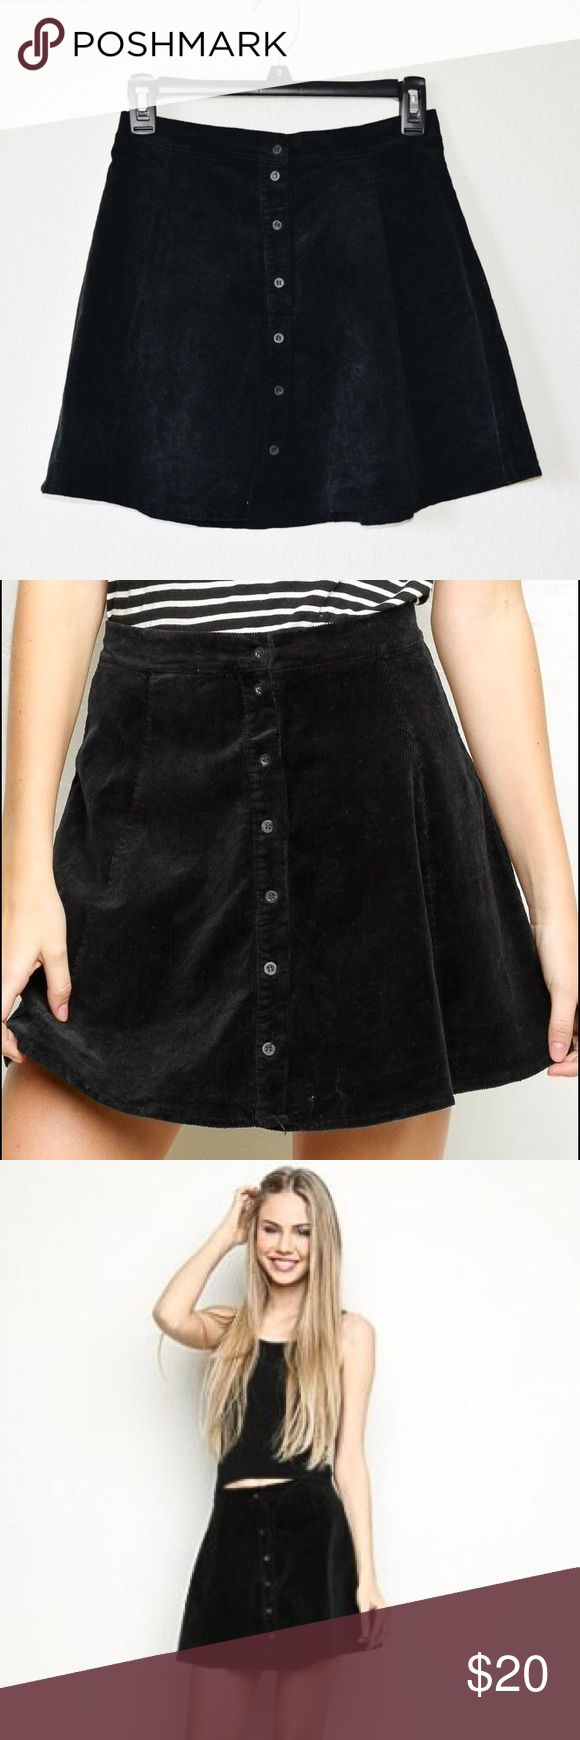 Brandy Byra Corduroy Skirt Worn a few times 9.8/10 condition Easily collects dust/lint but not so noticeable No other known flaws •••REFER TO POLICIES before asking any questions Brandy Melville Skirts Circle & Skater